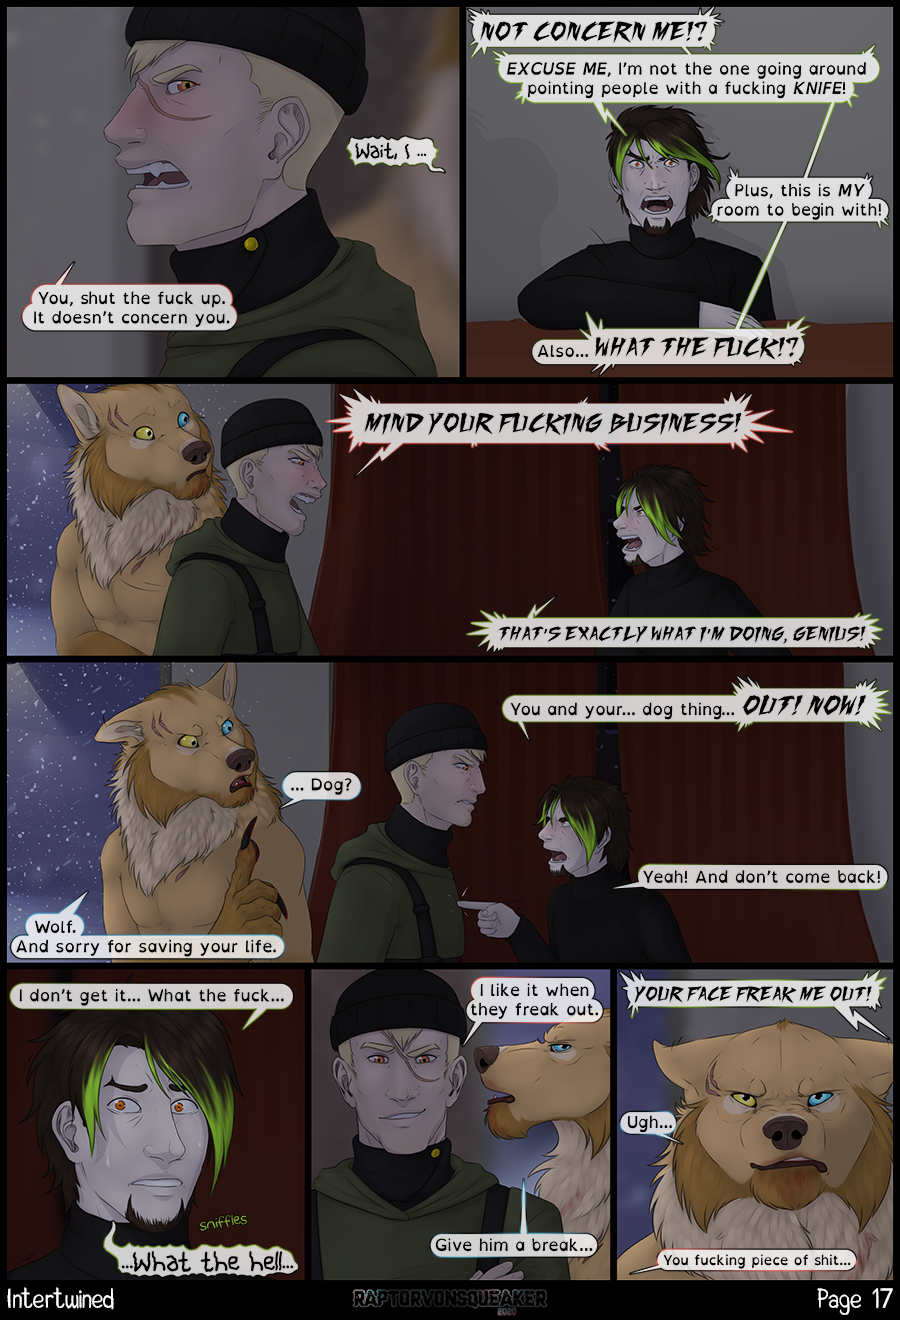 Page 17 - Freaking out.